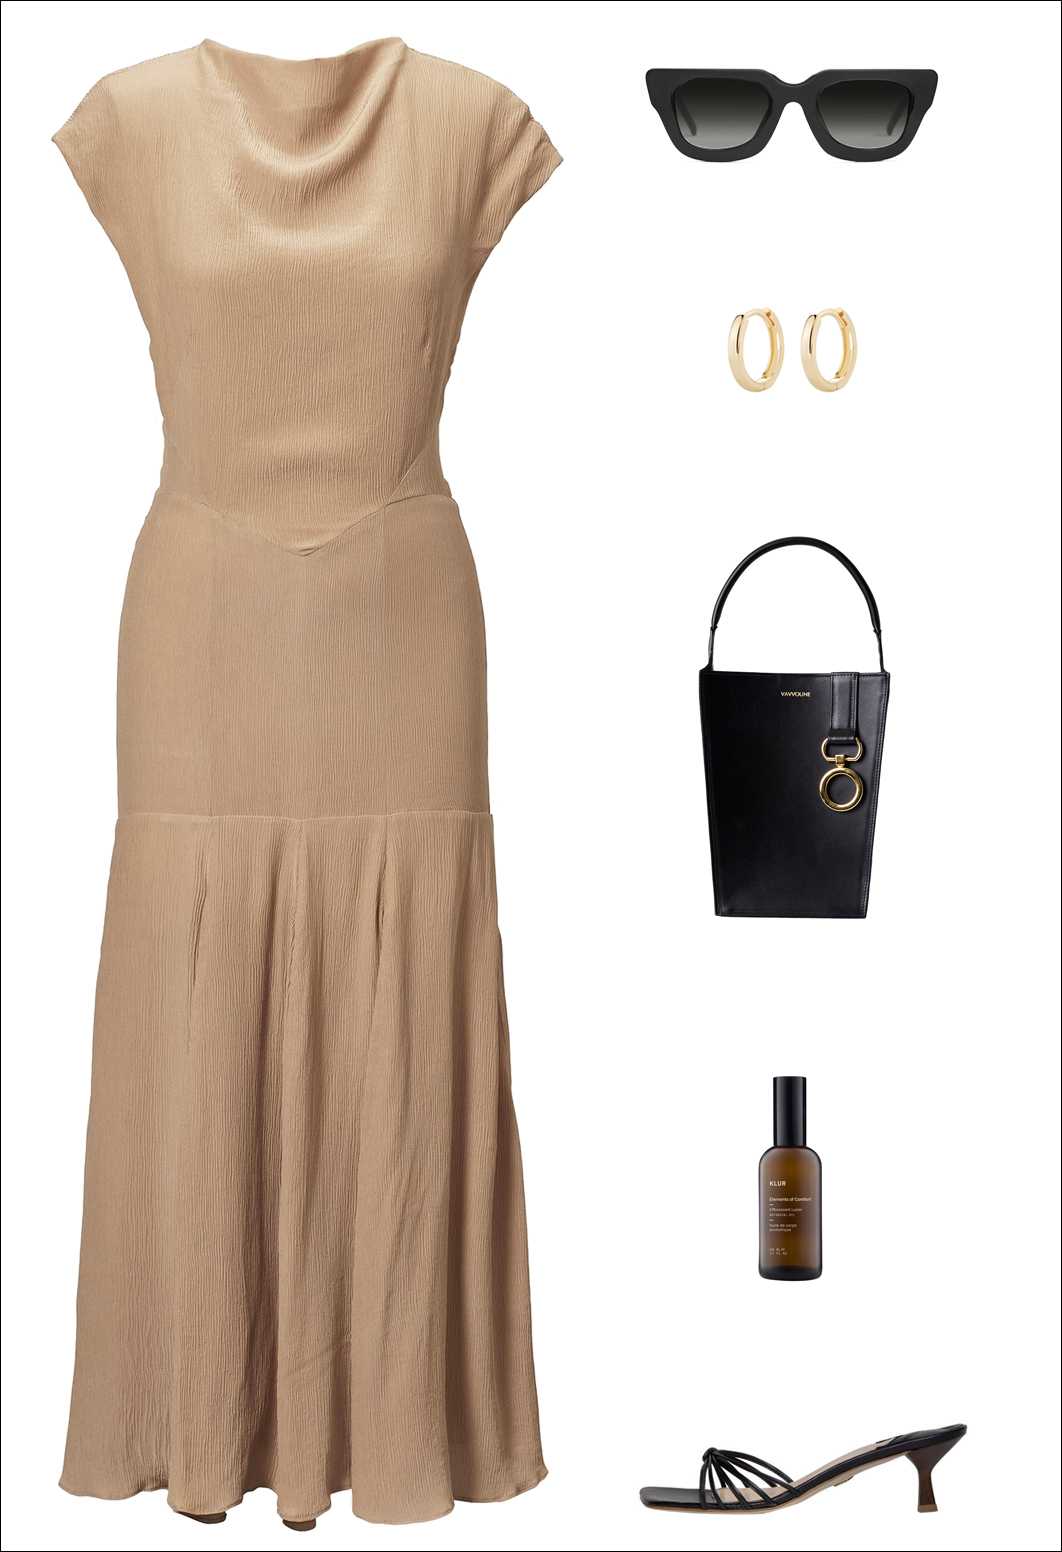 Stylish Black-Owned Fashion Brands — Summer Outfit Idea With a Camel Midi Dress, Gold Hoop Earrings, Black Bag, and Strappy Mule Sandals